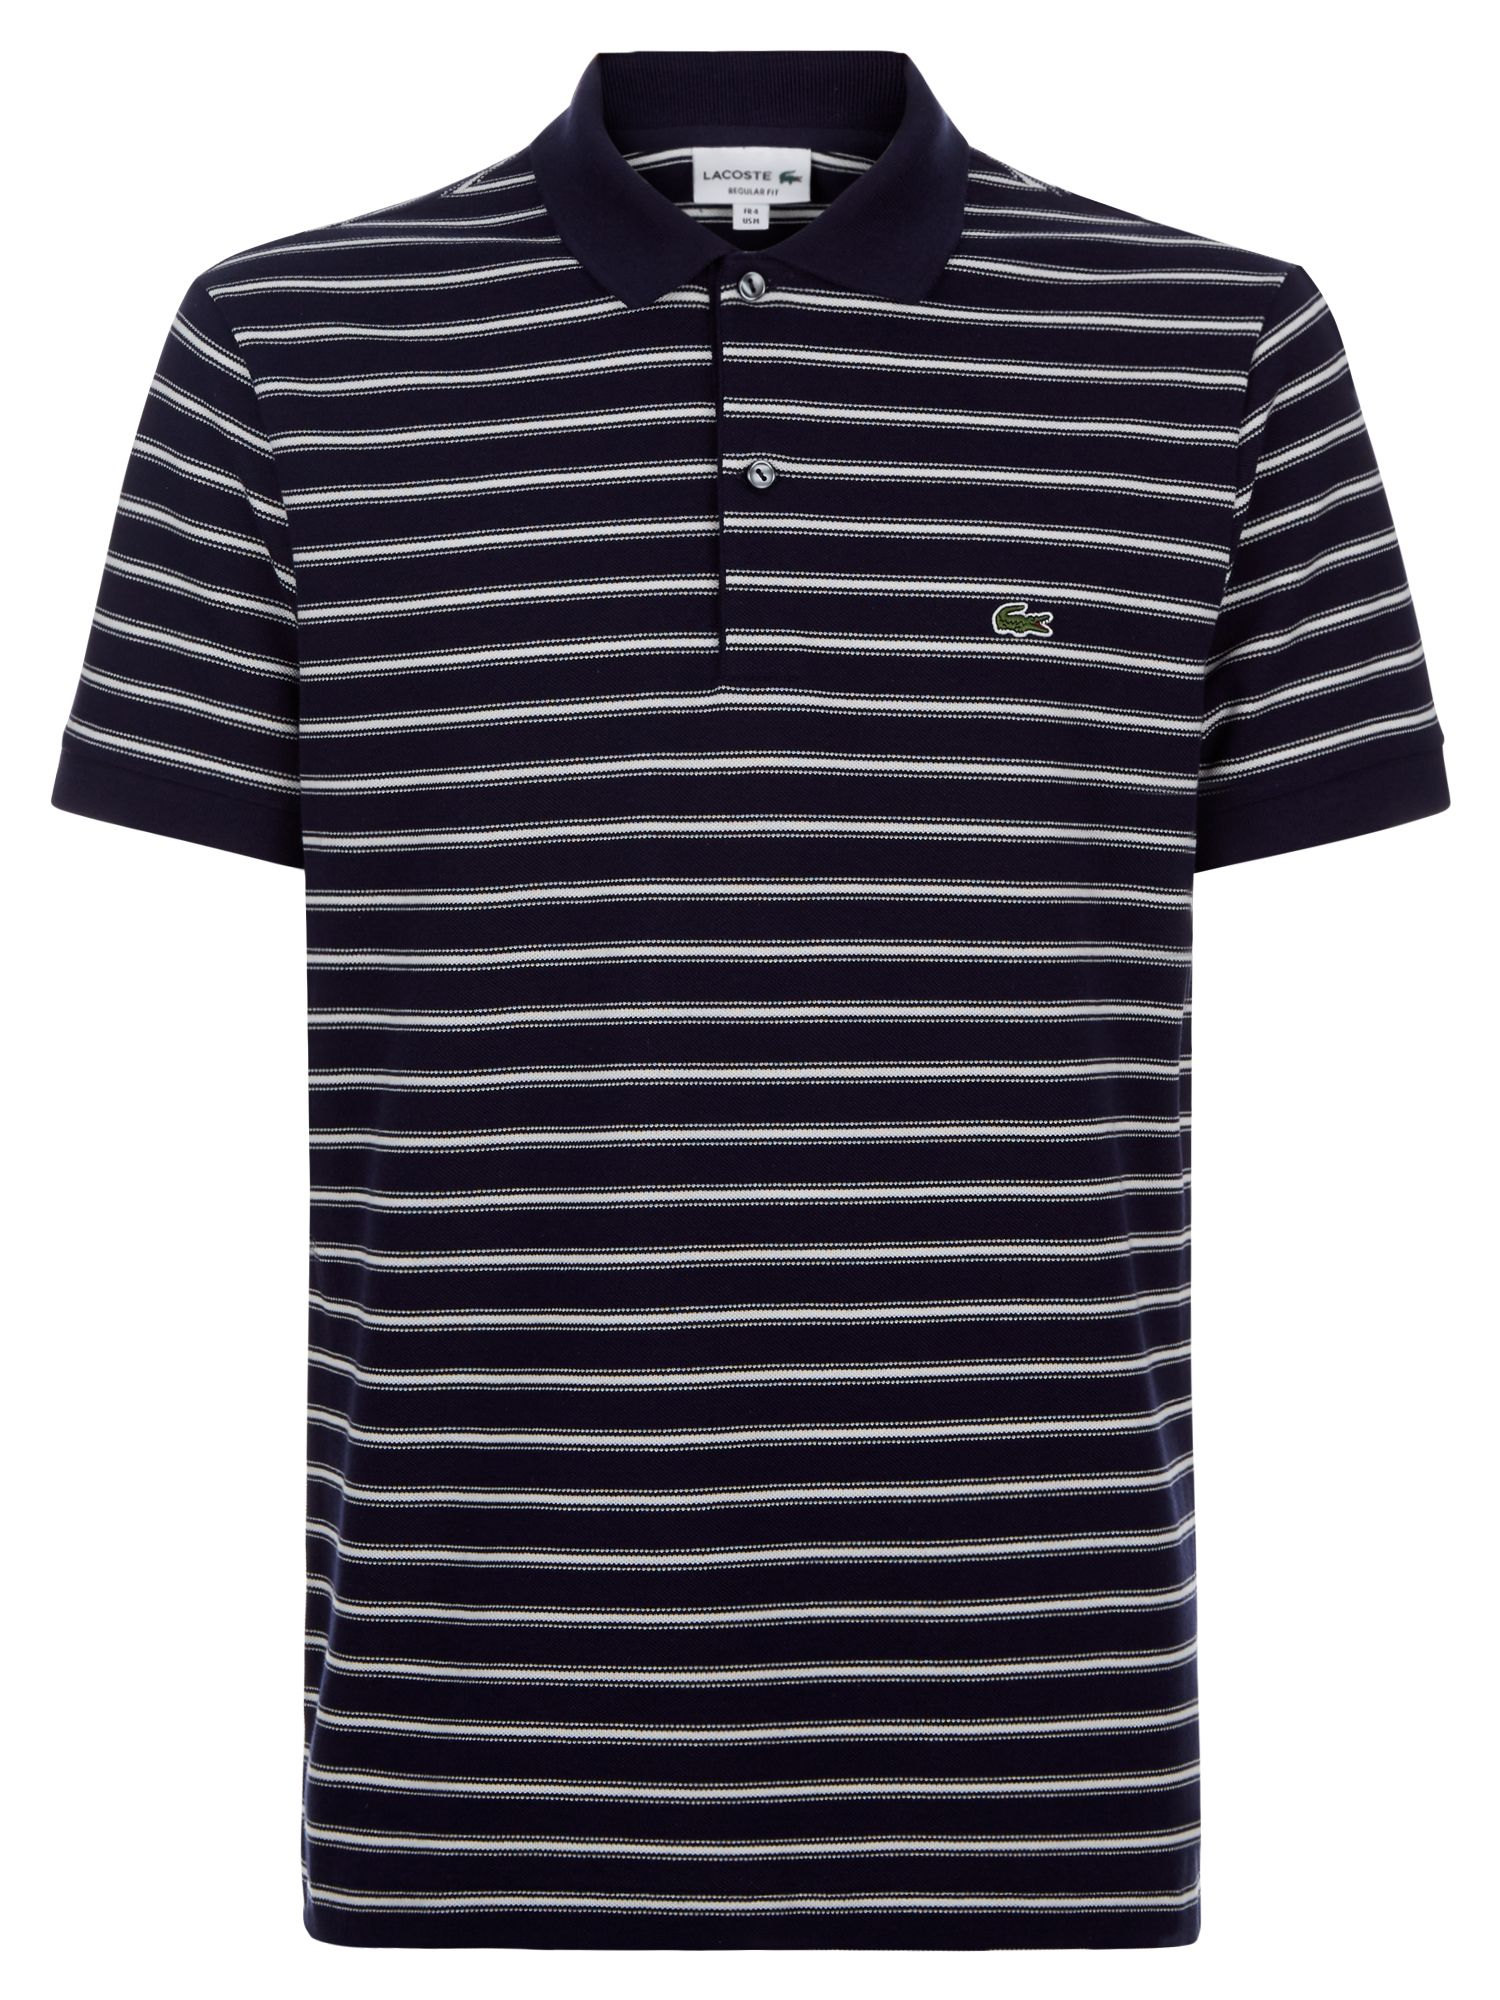 Men's Lacoste Stripped Polo, Blue Wash